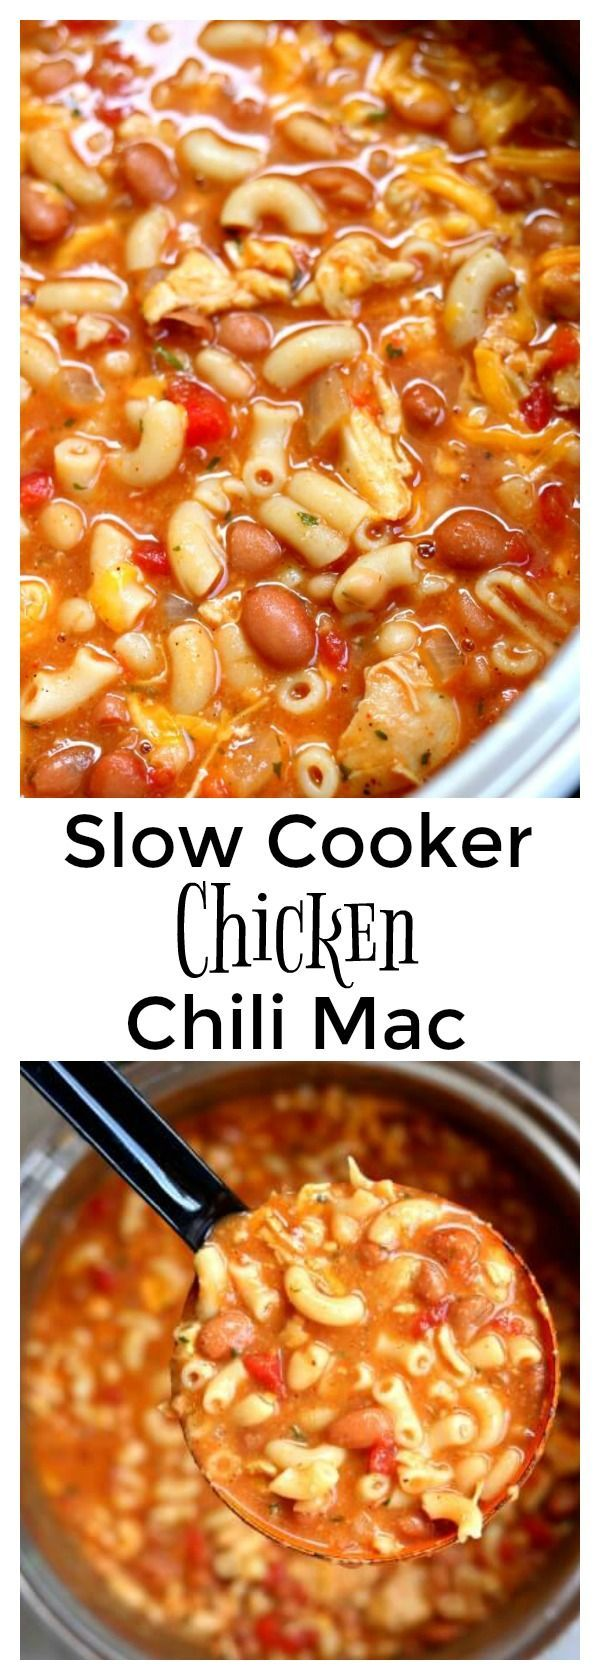 Slow Cooker Chicken Chili Mac–an easy one pot recipe for cheesy chili mac made with tender bites of chicken and two kinds of beans. A perfect easy weeknight meal.  #ad #SWBeans #IC